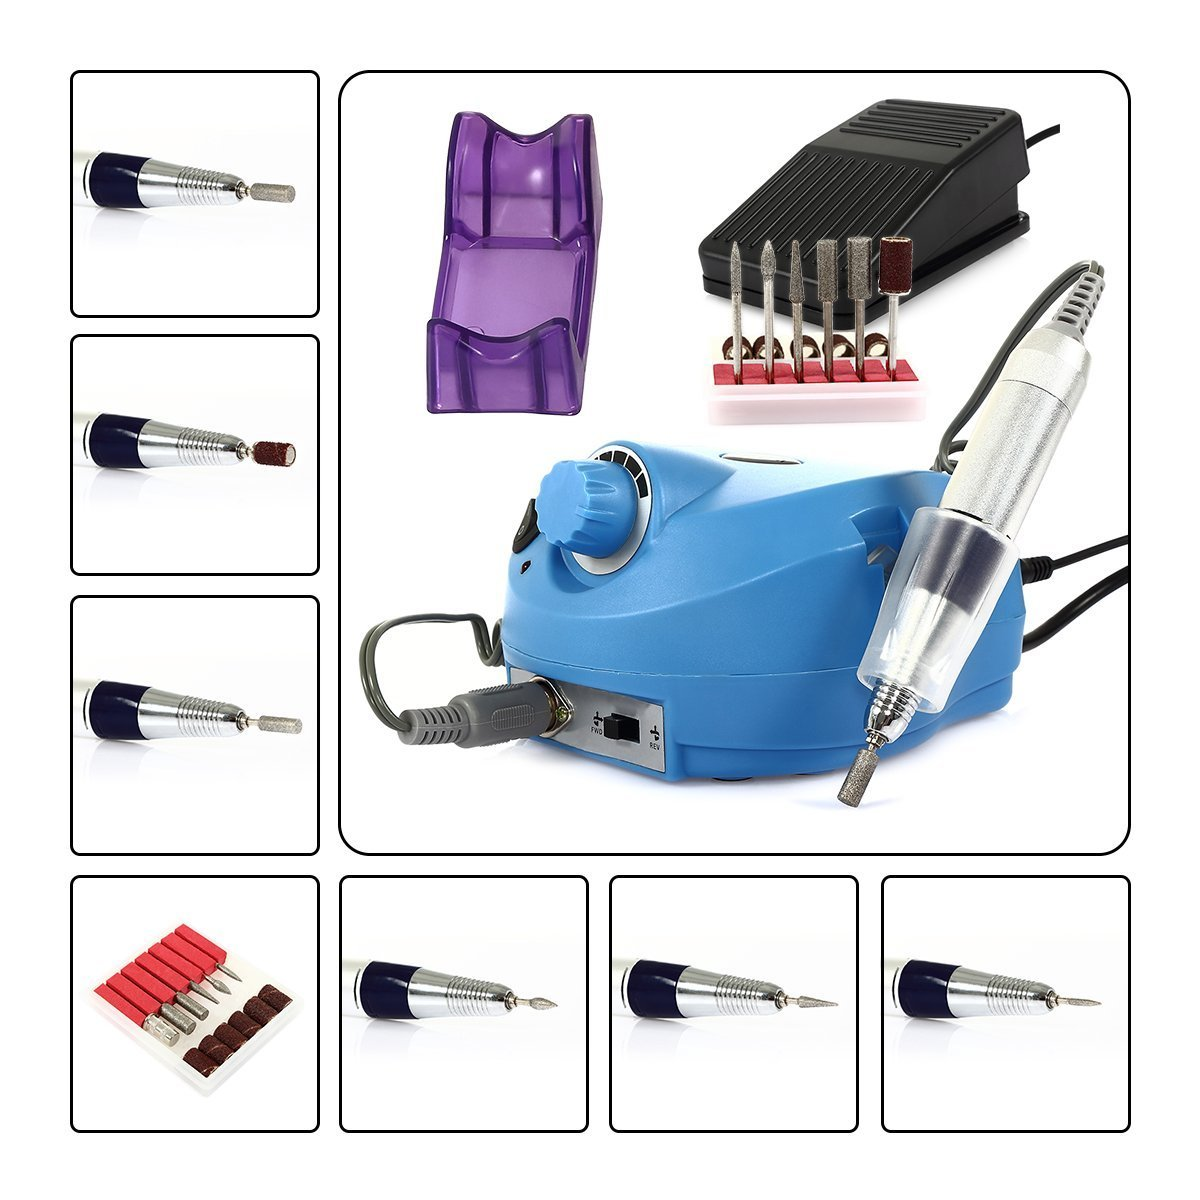 CoastaCloud Electric Nail Drill File Machine 110V 18000-30000RPM Professional Nails Salon Manicure Pedicure Grooming Kits with Pedal Blue